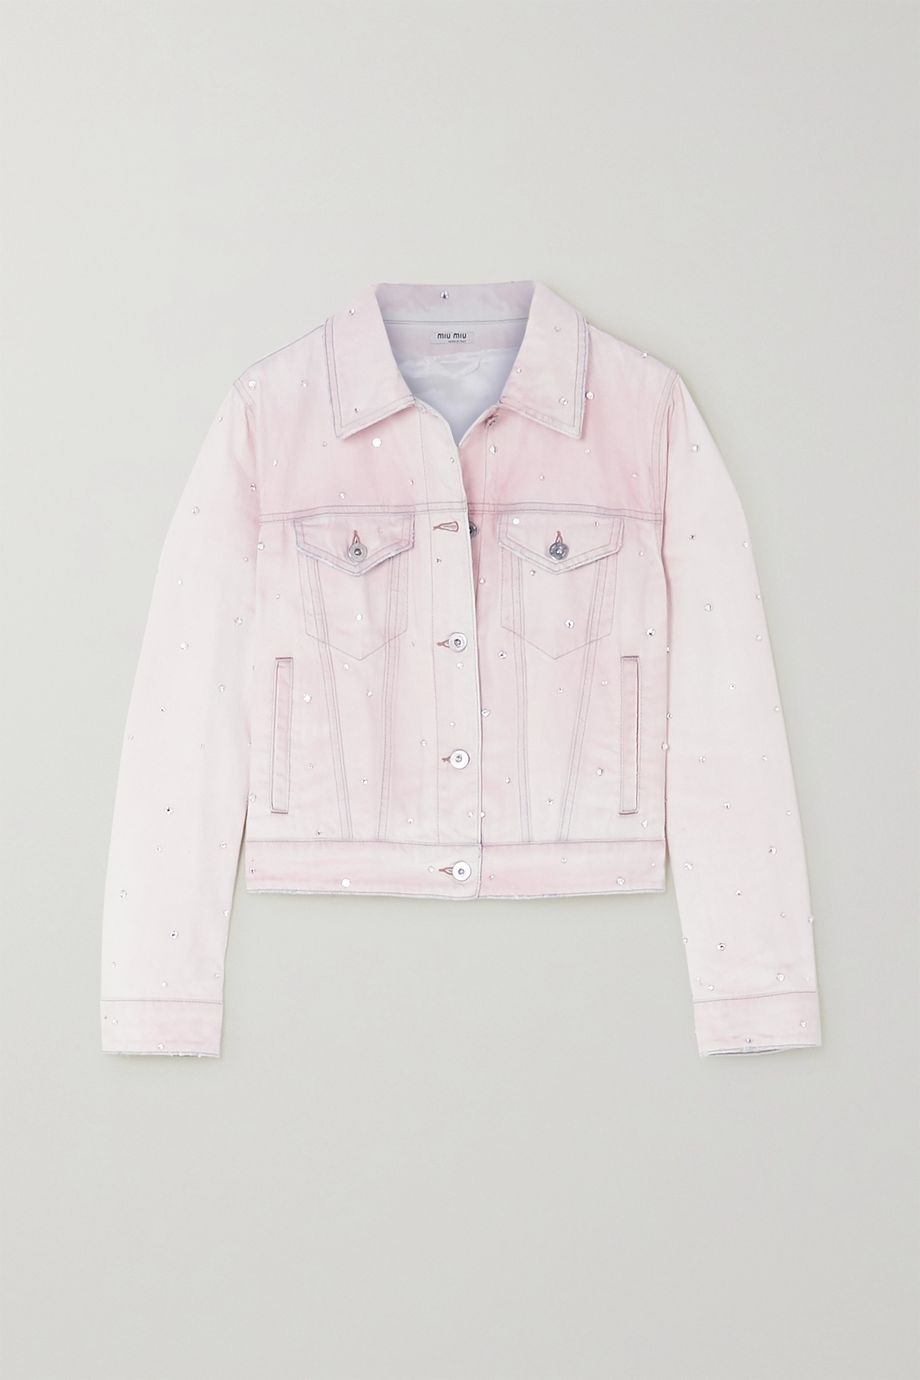 Miu Miu Crystal-embellished denim jacket